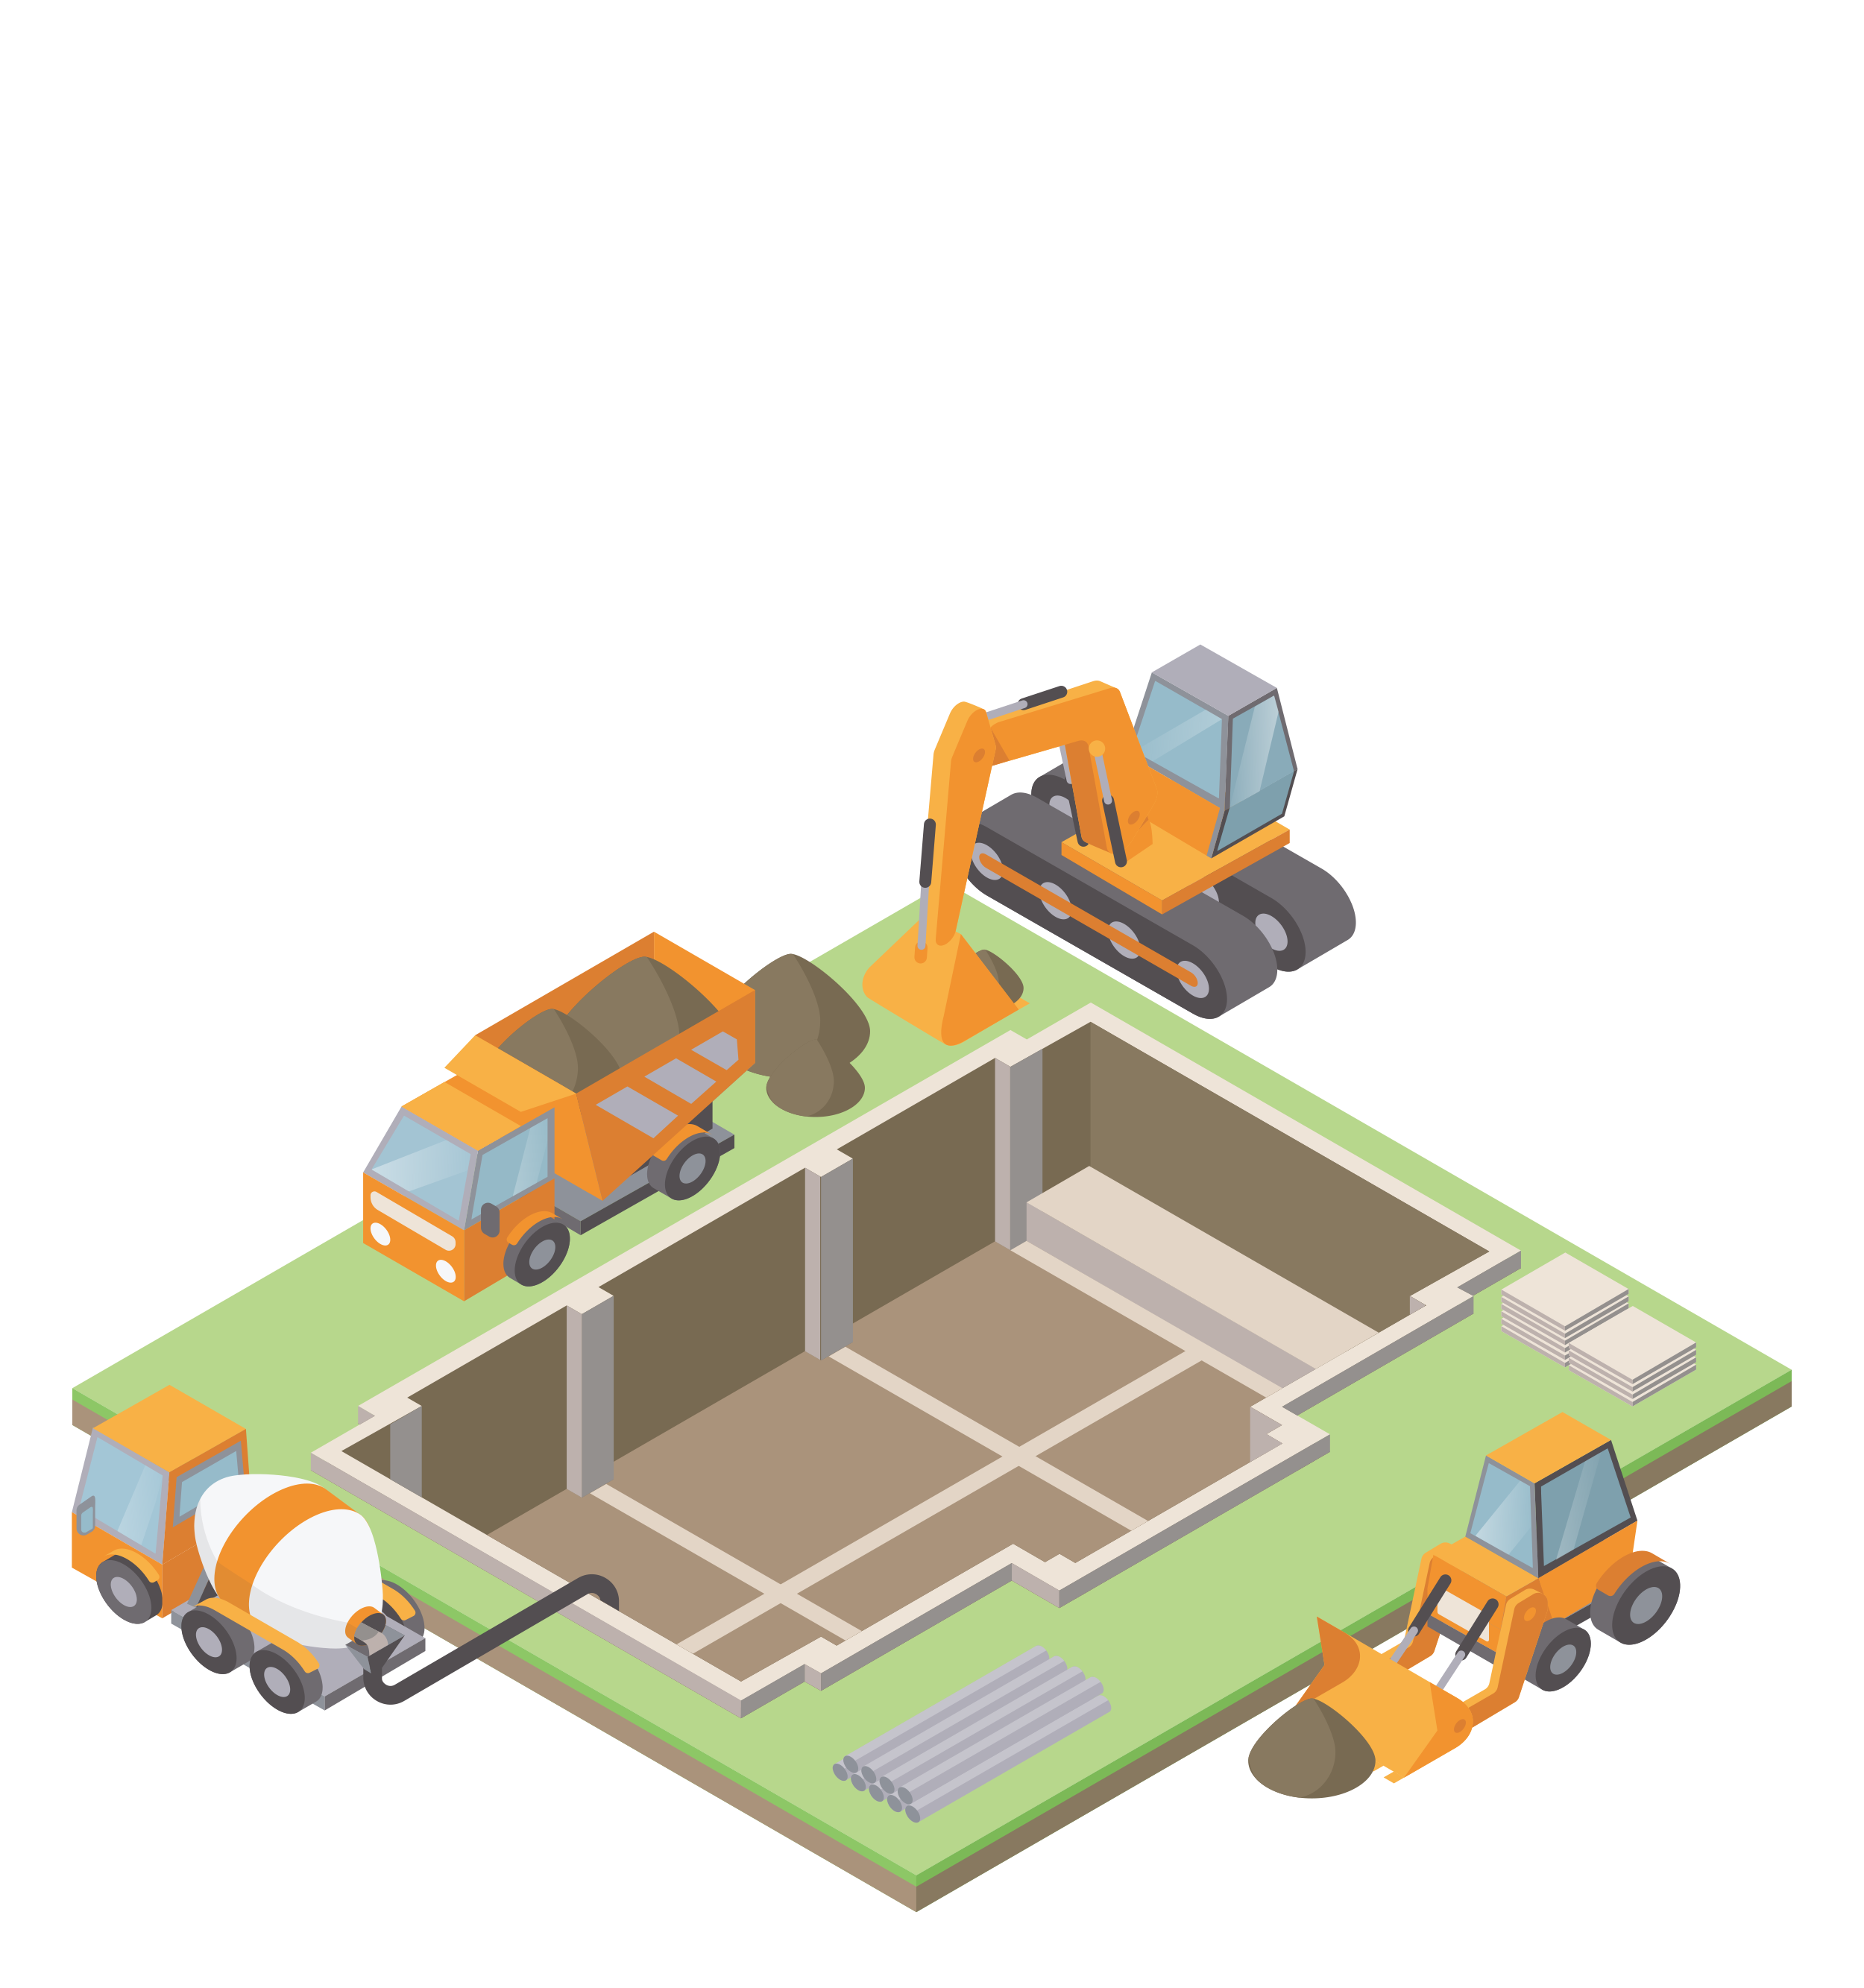 illustration_andre_levy_zhion_vector_isometric_perspective_infographic_construction_building_team_process_2.png